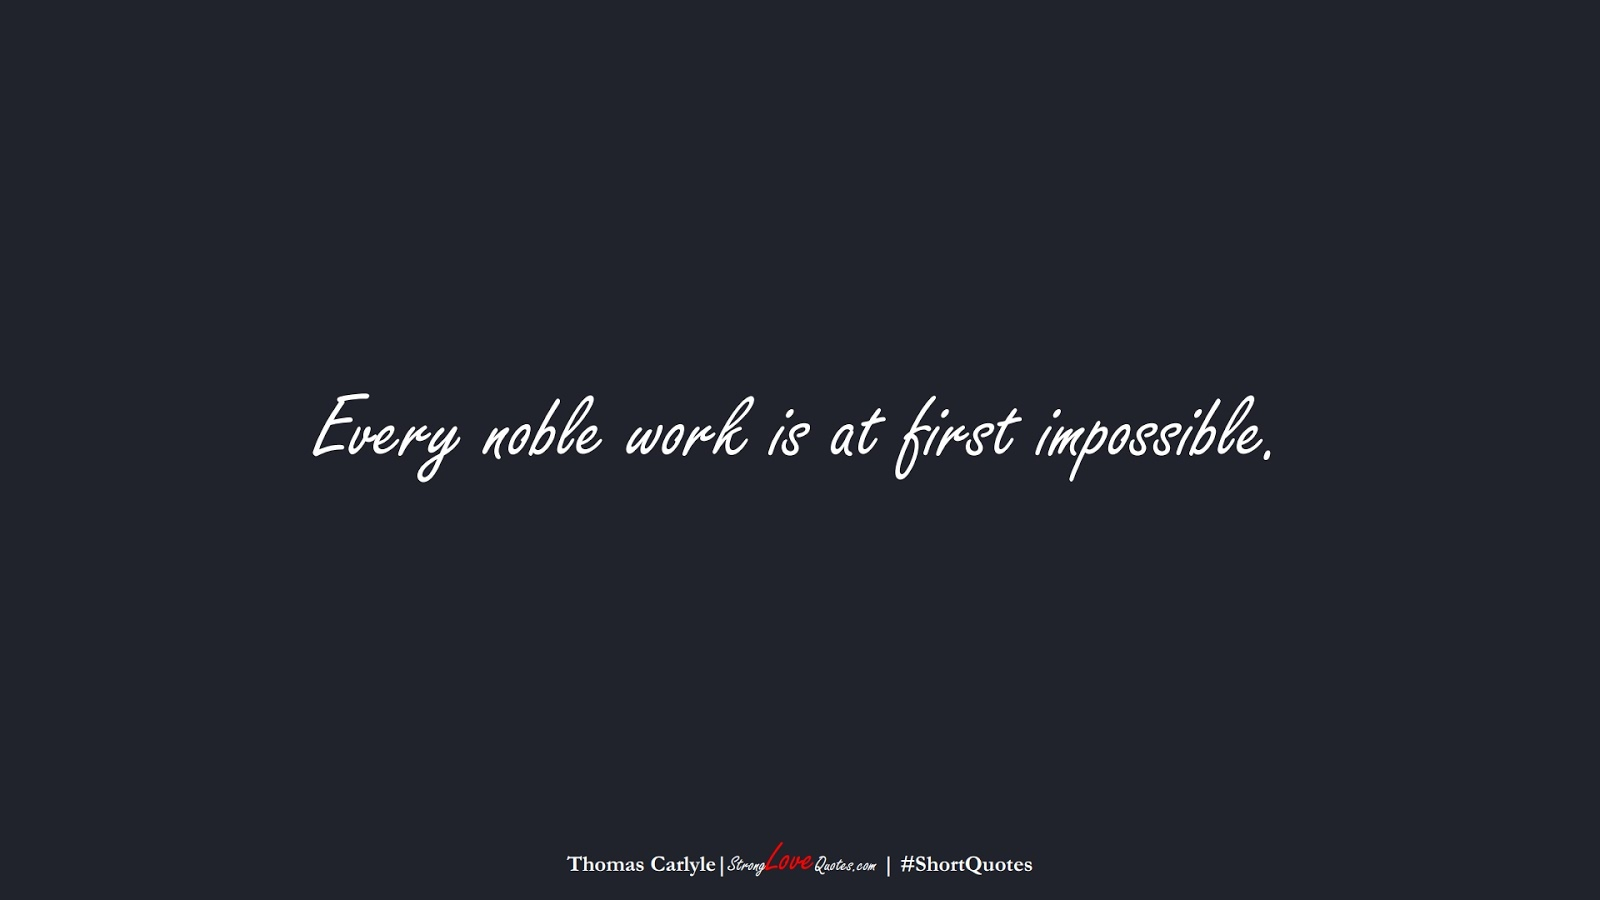 Every noble work is at first impossible. (Thomas Carlyle);  #ShortQuotes